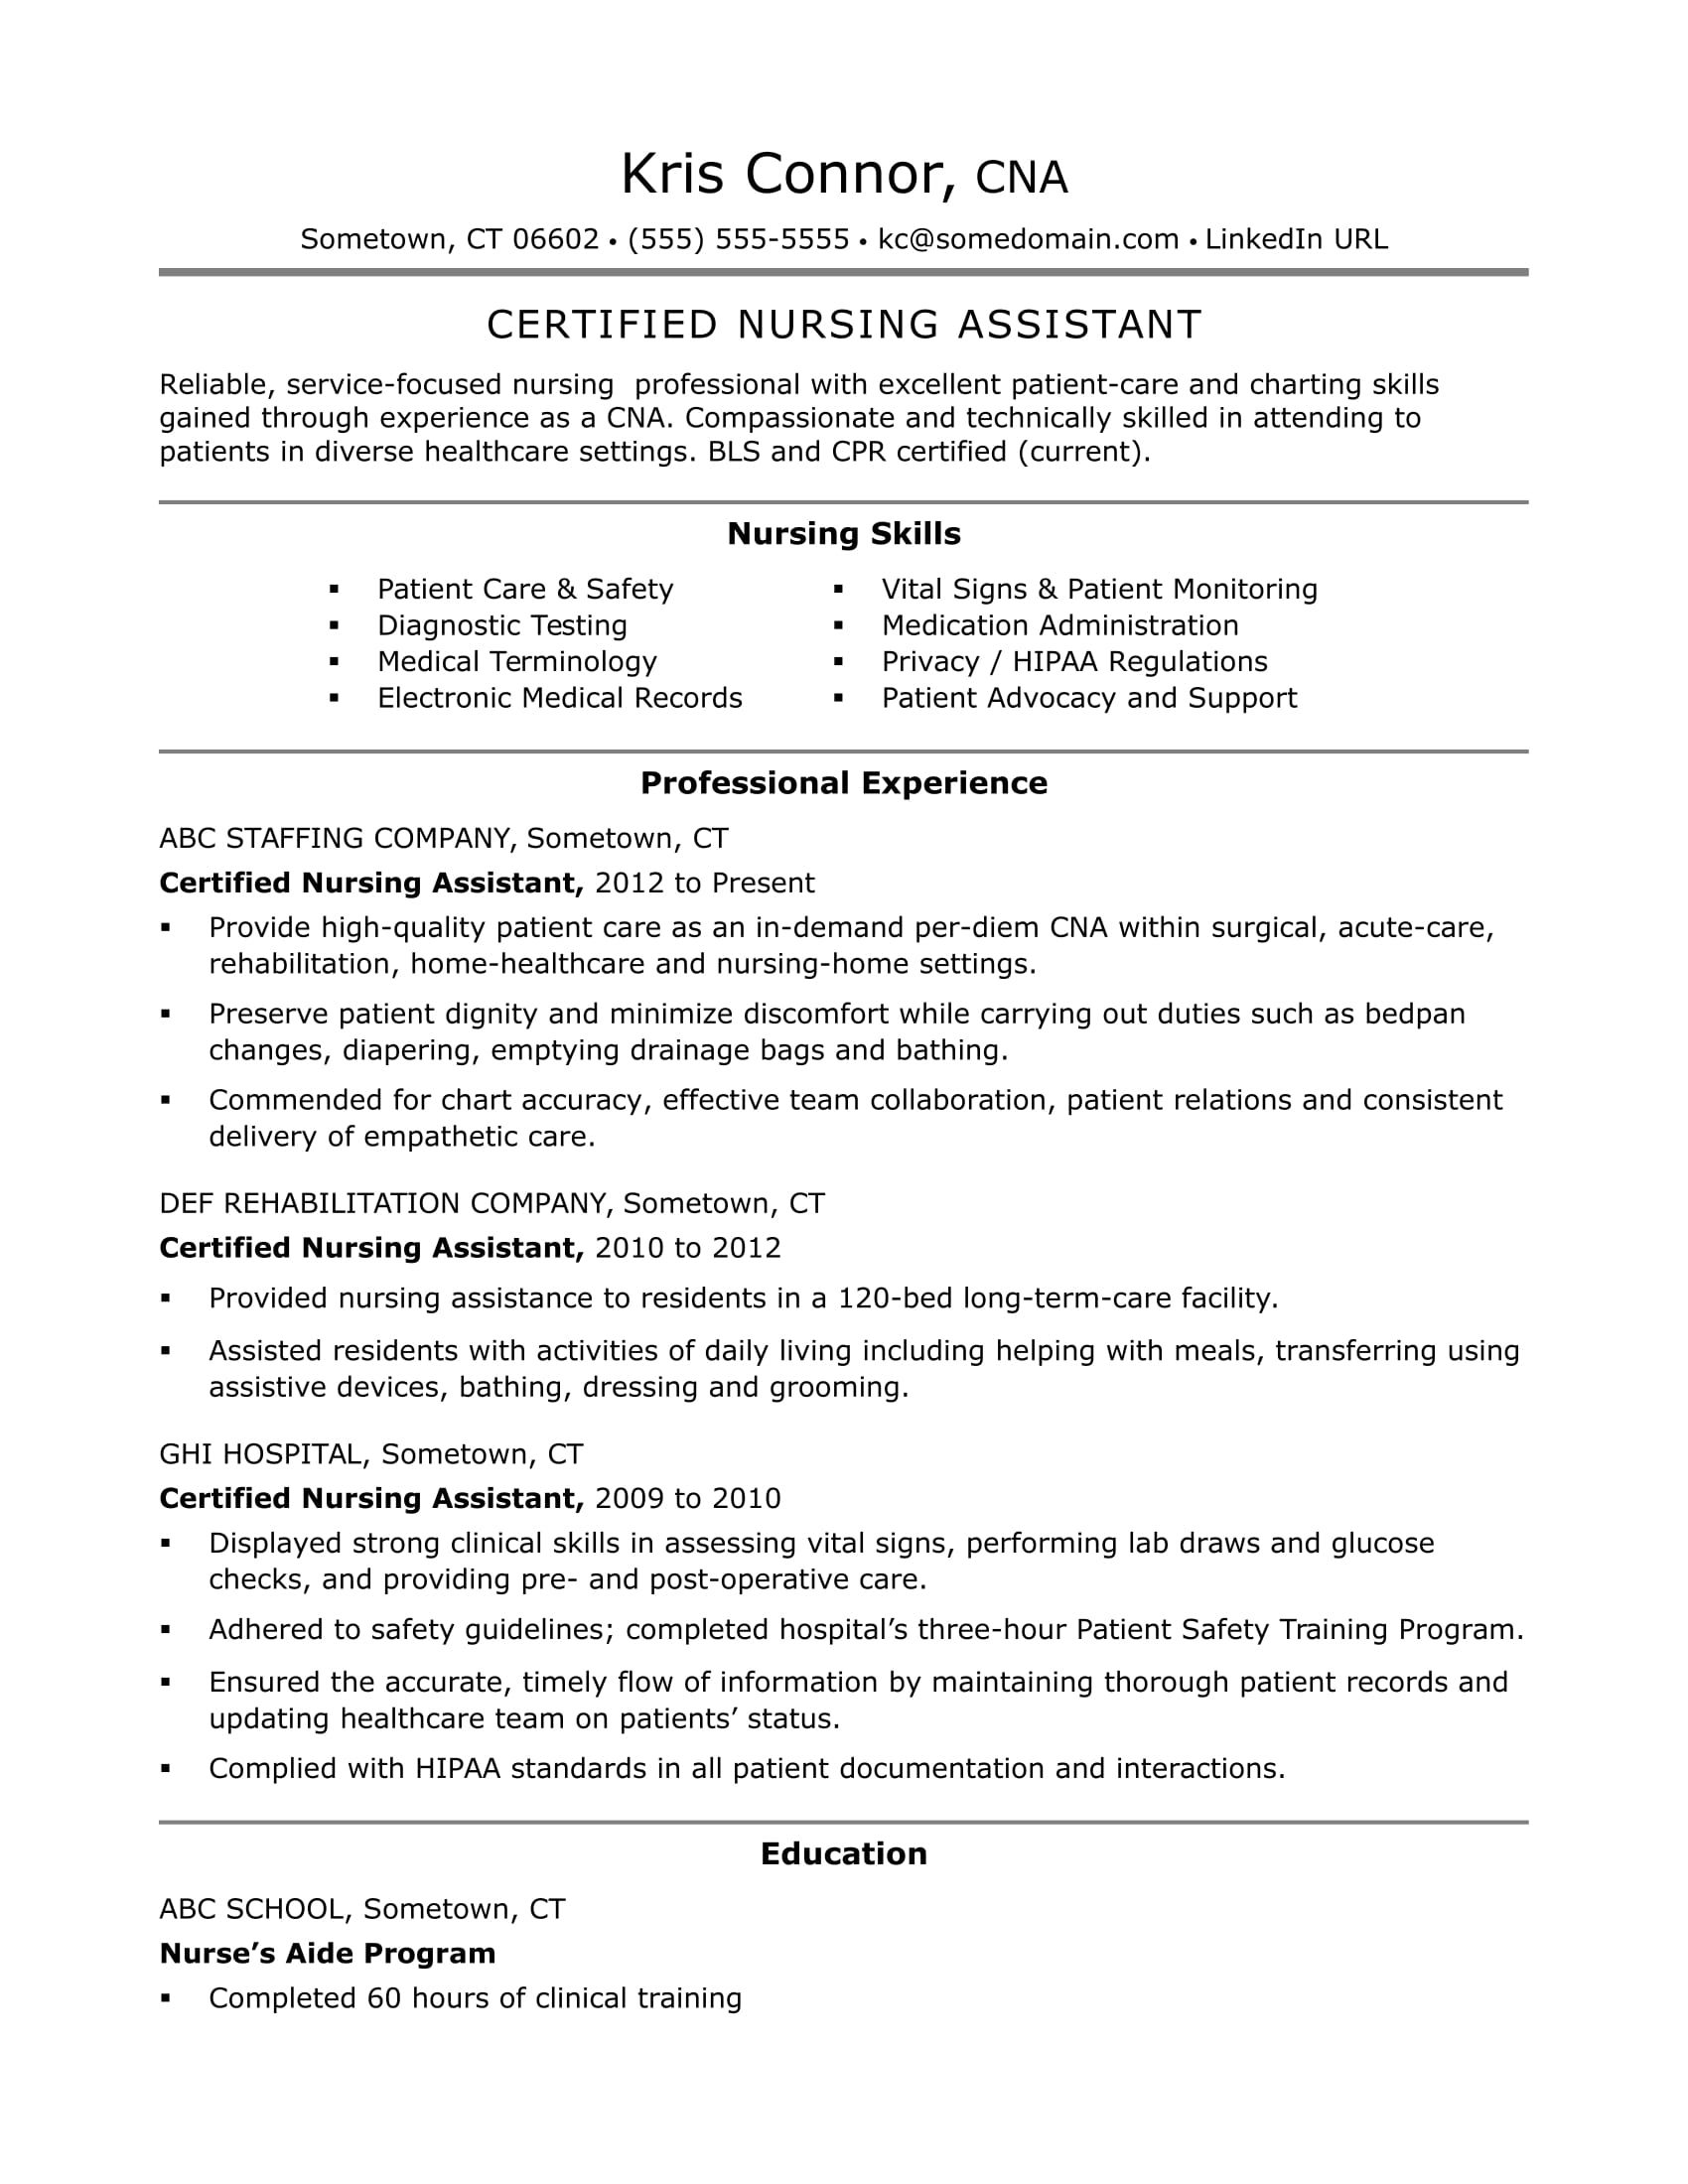 Cna resume examples skills for cnas monster cna resume example xflitez Images